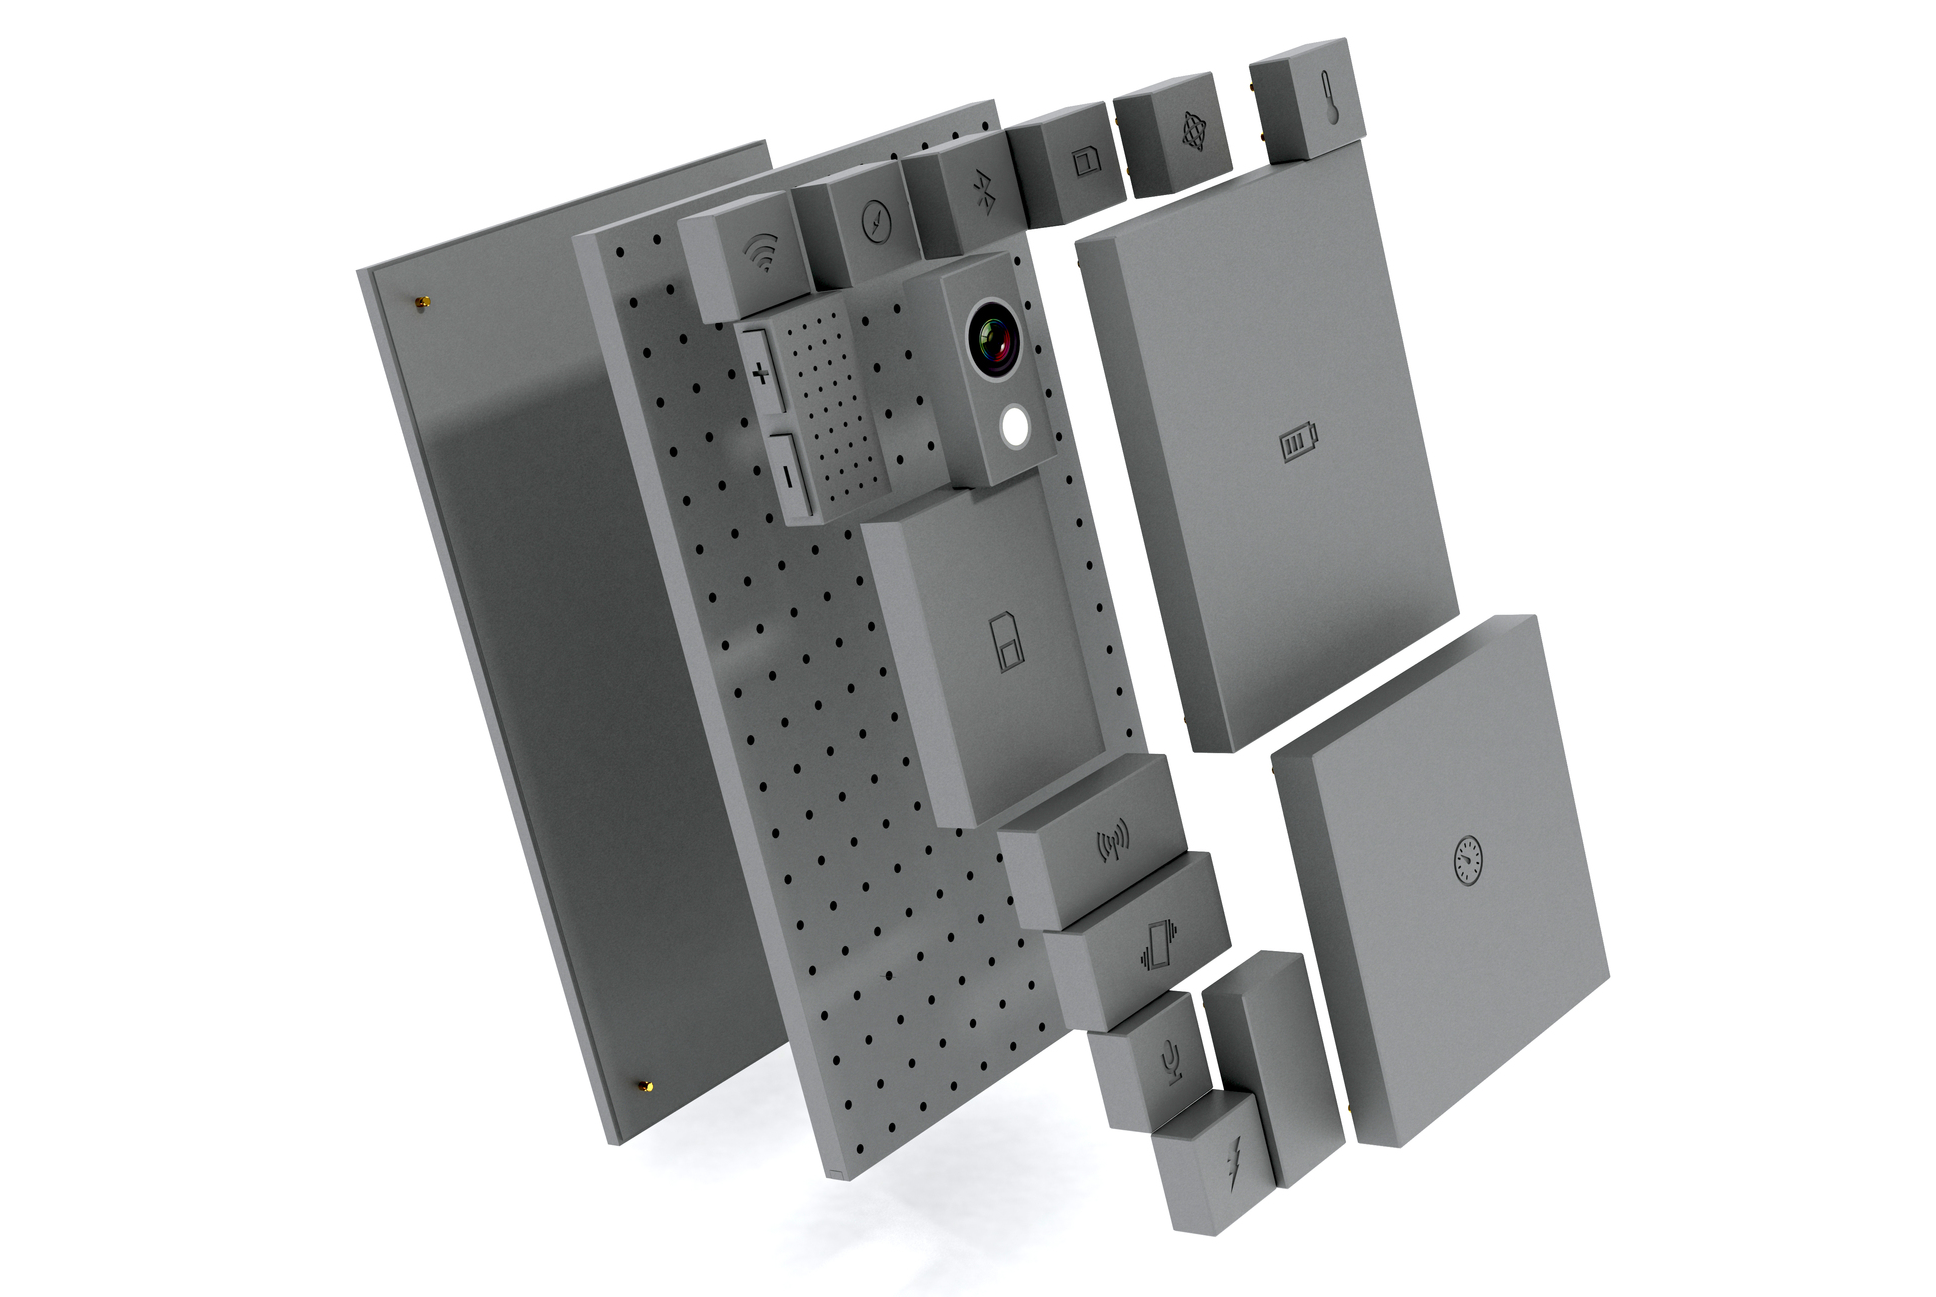 Concept image of Phonebloks